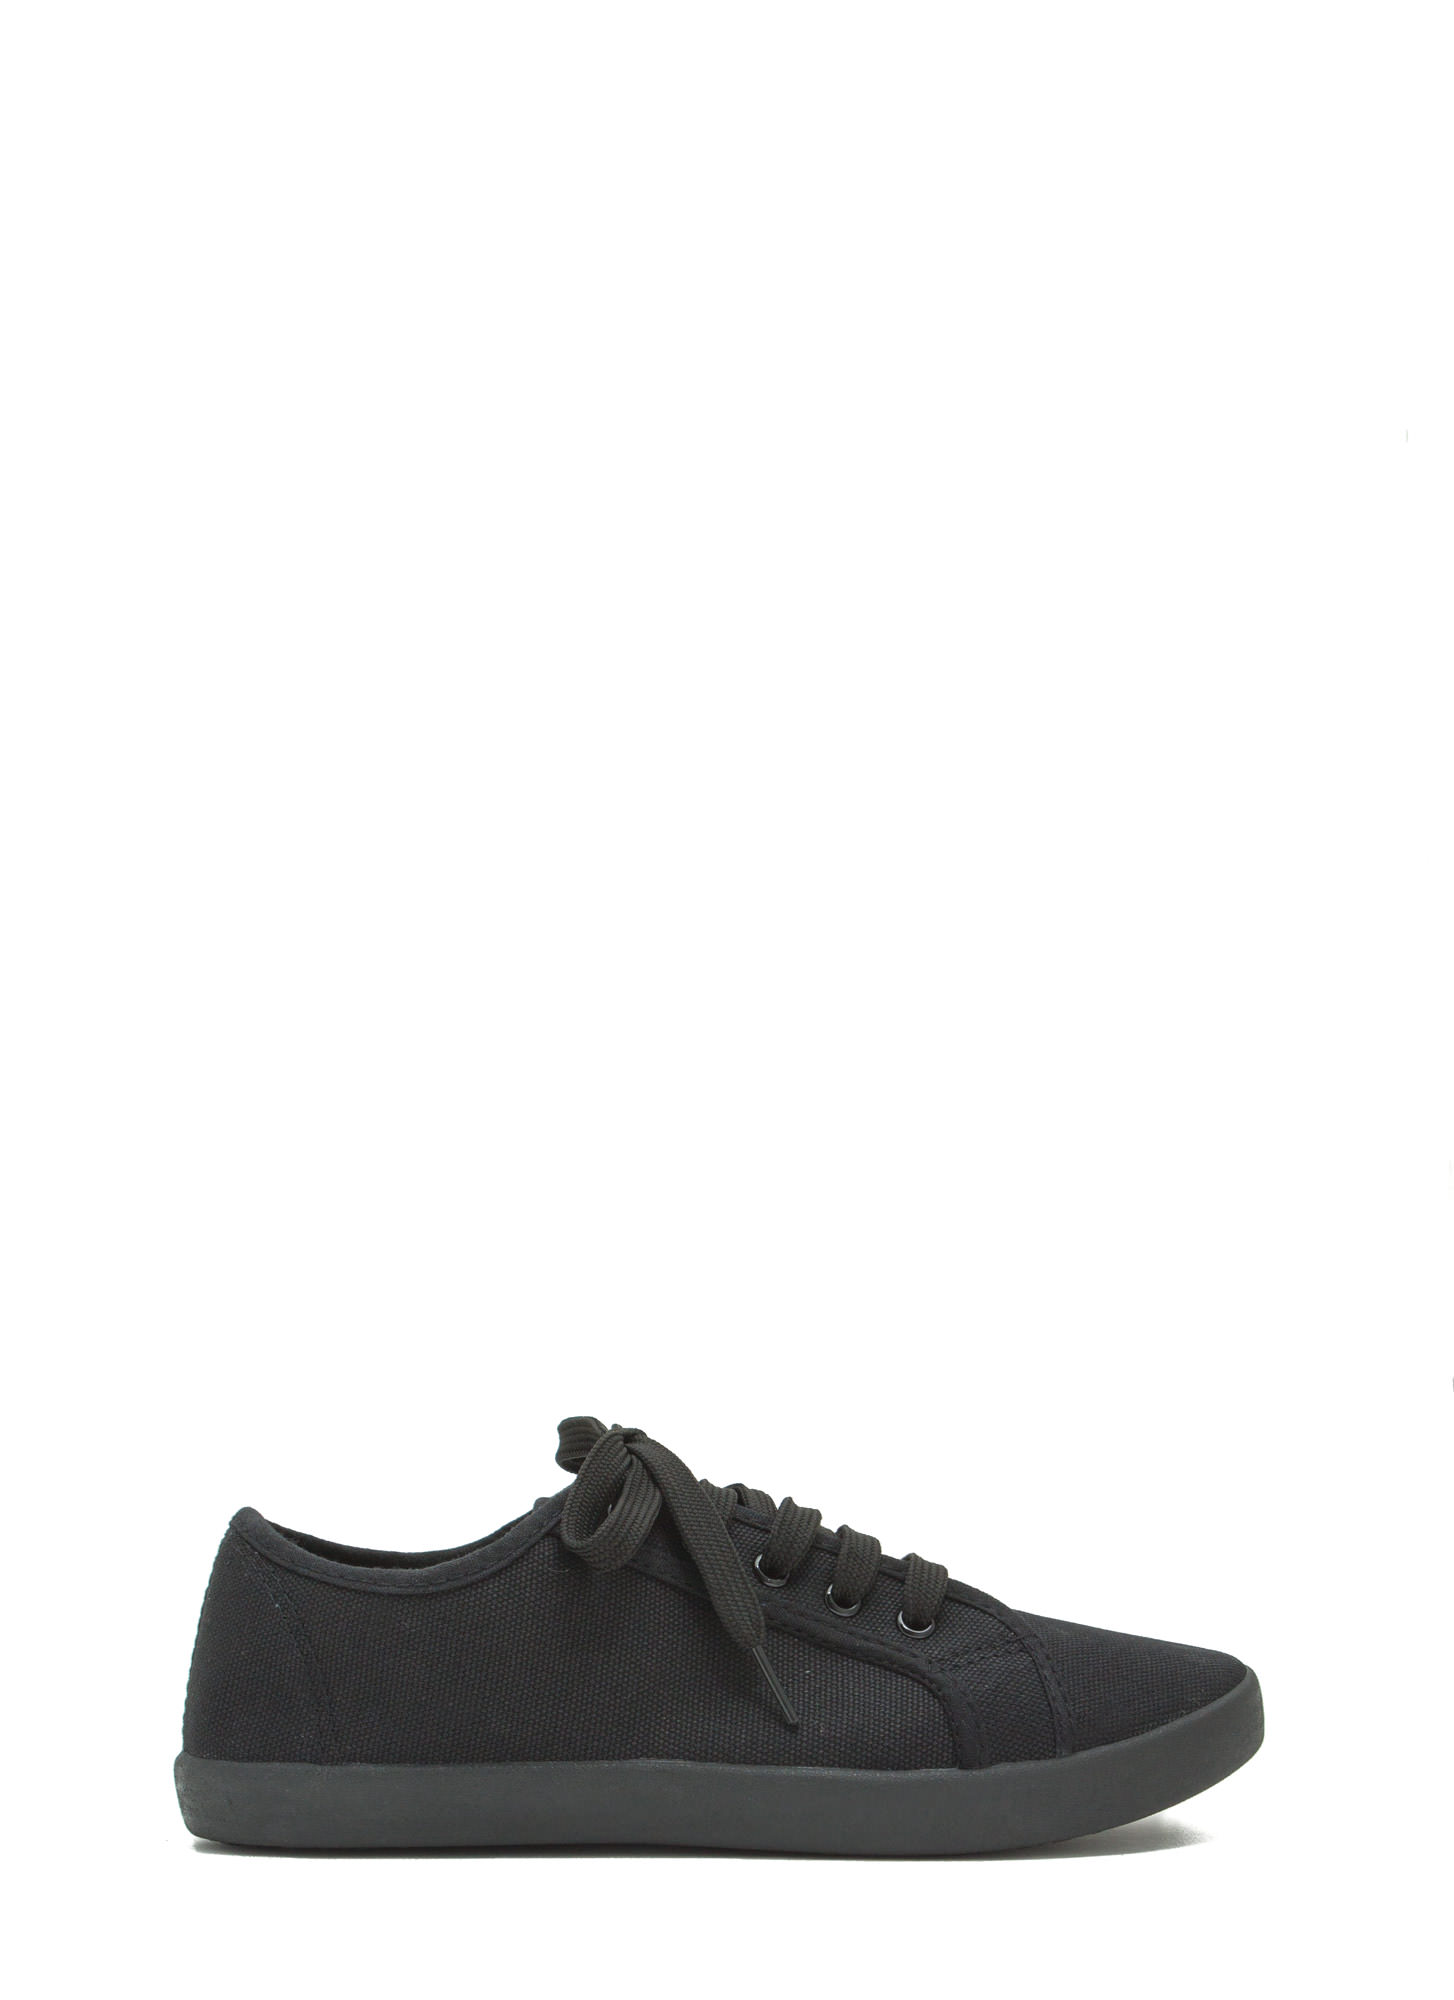 Off-Duty Classic Canvas Sneakers BLACK